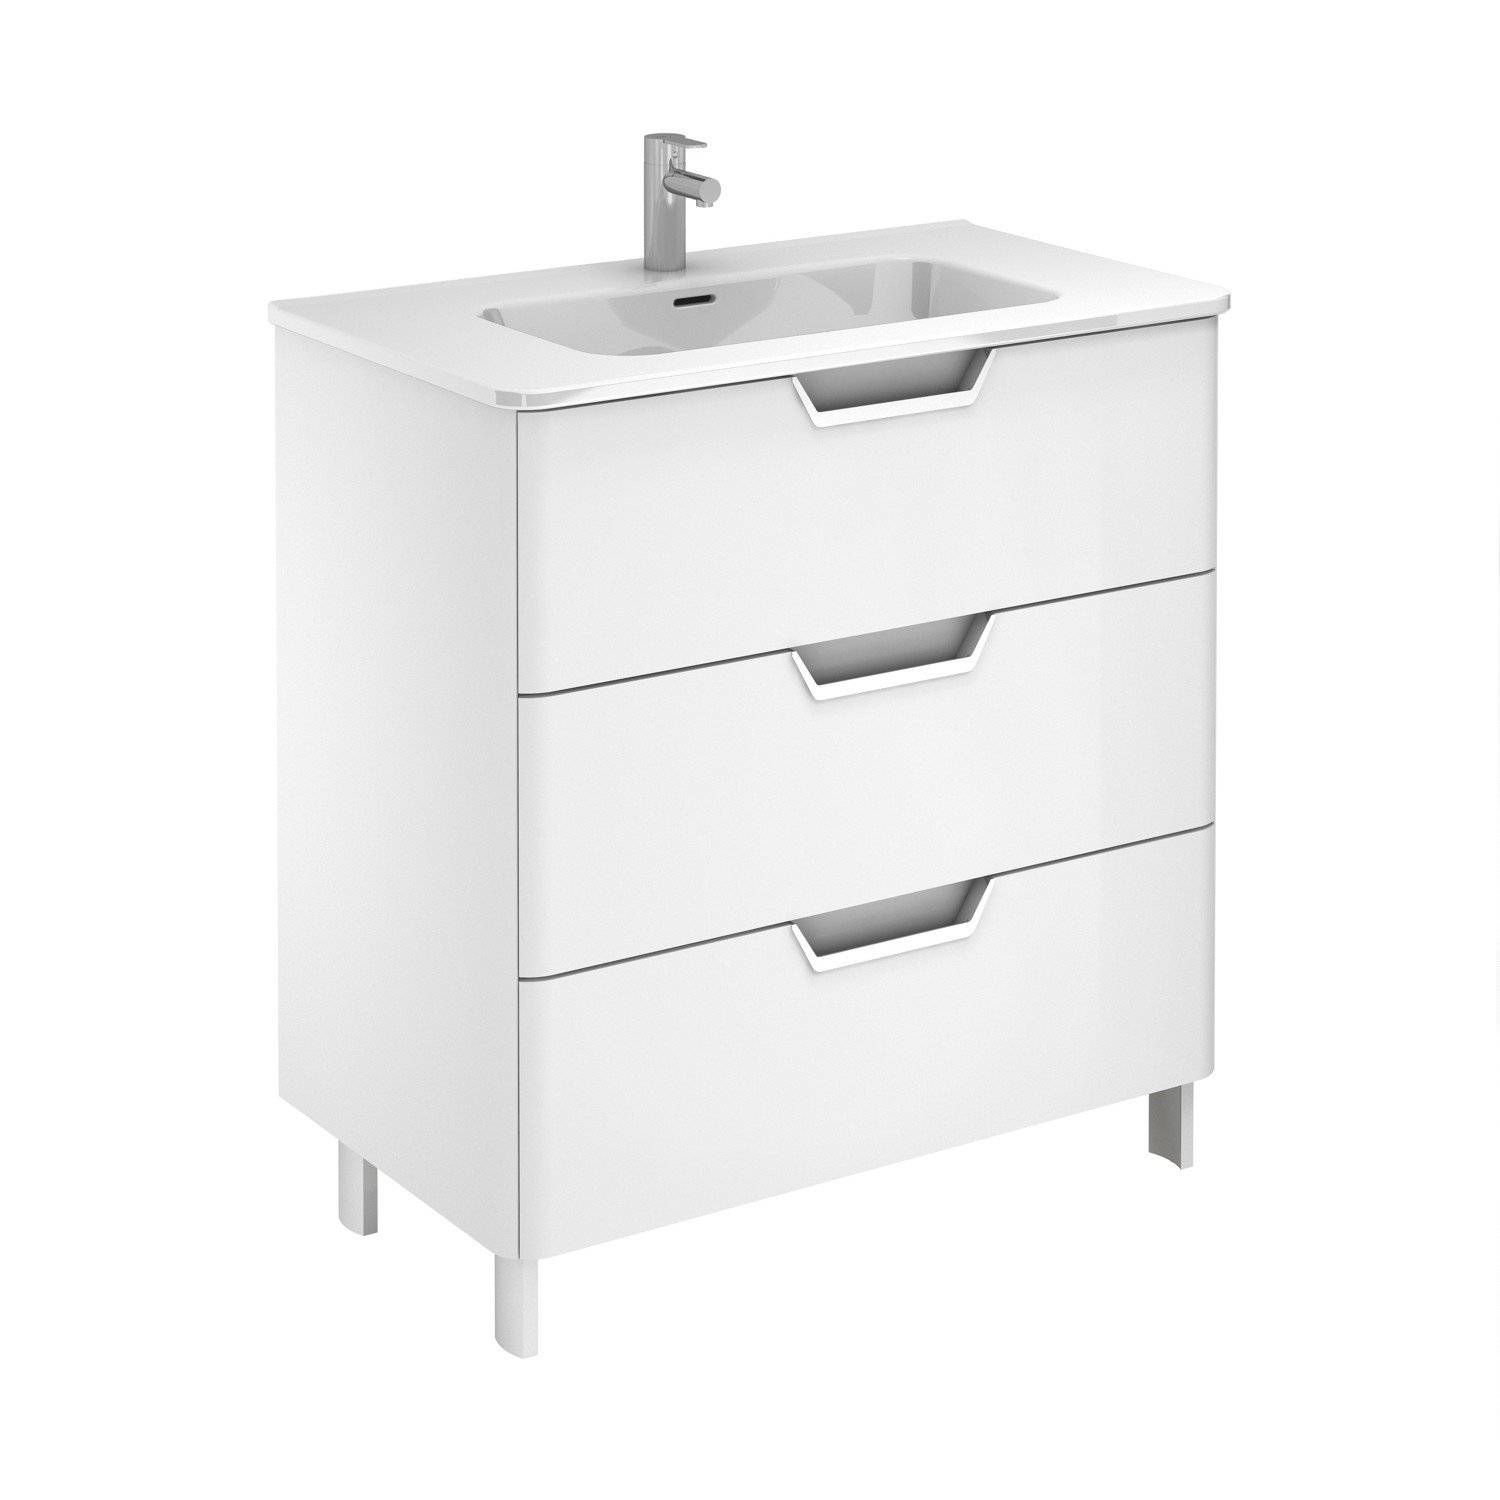 32 Inch Freestanding Bathroom Vanity